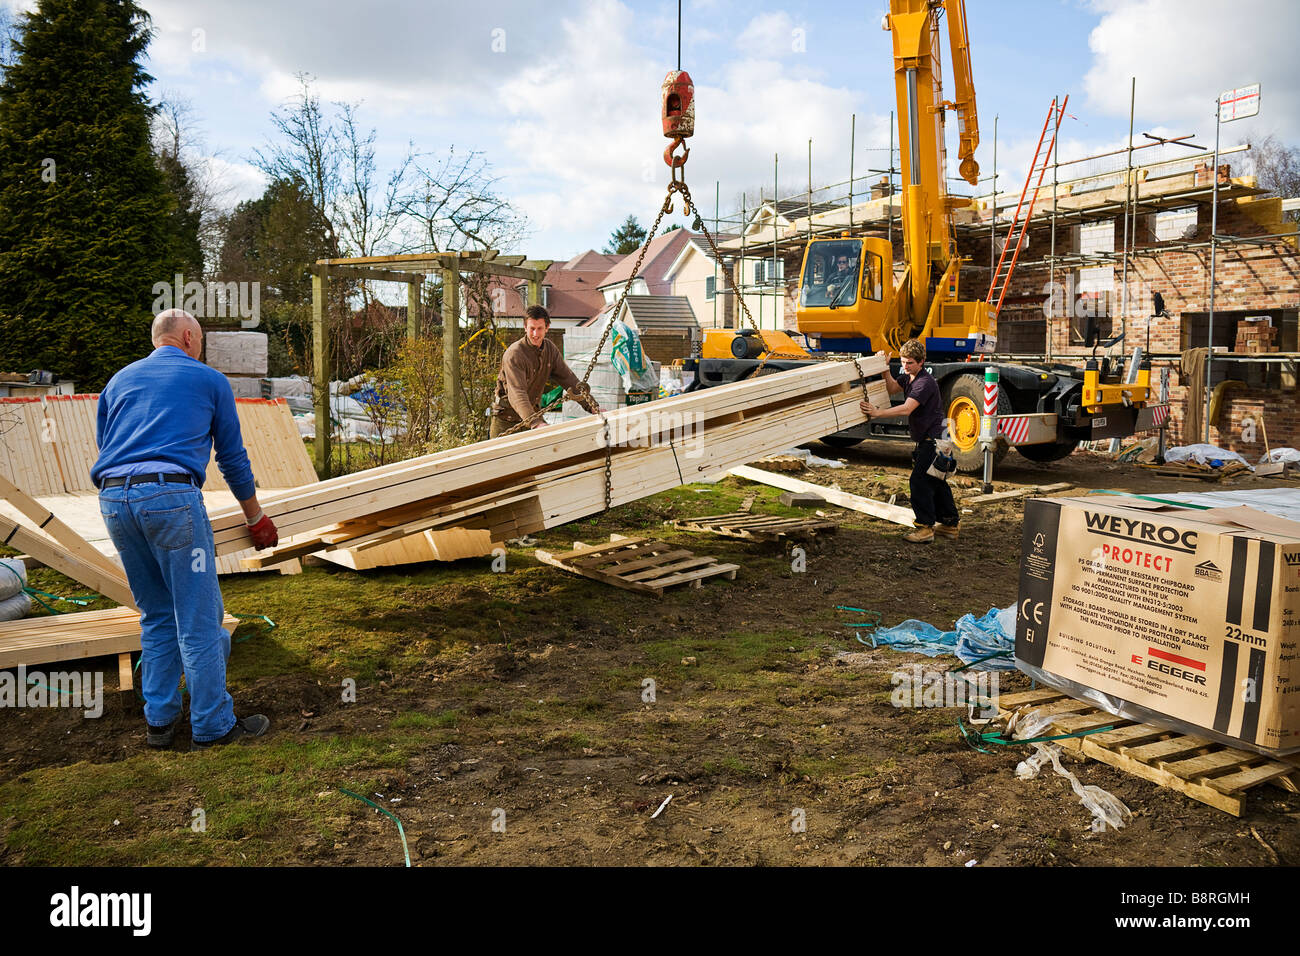 Workmen unloading delivery of roofing timbers from a consignment ready to build a roof - Stock Image